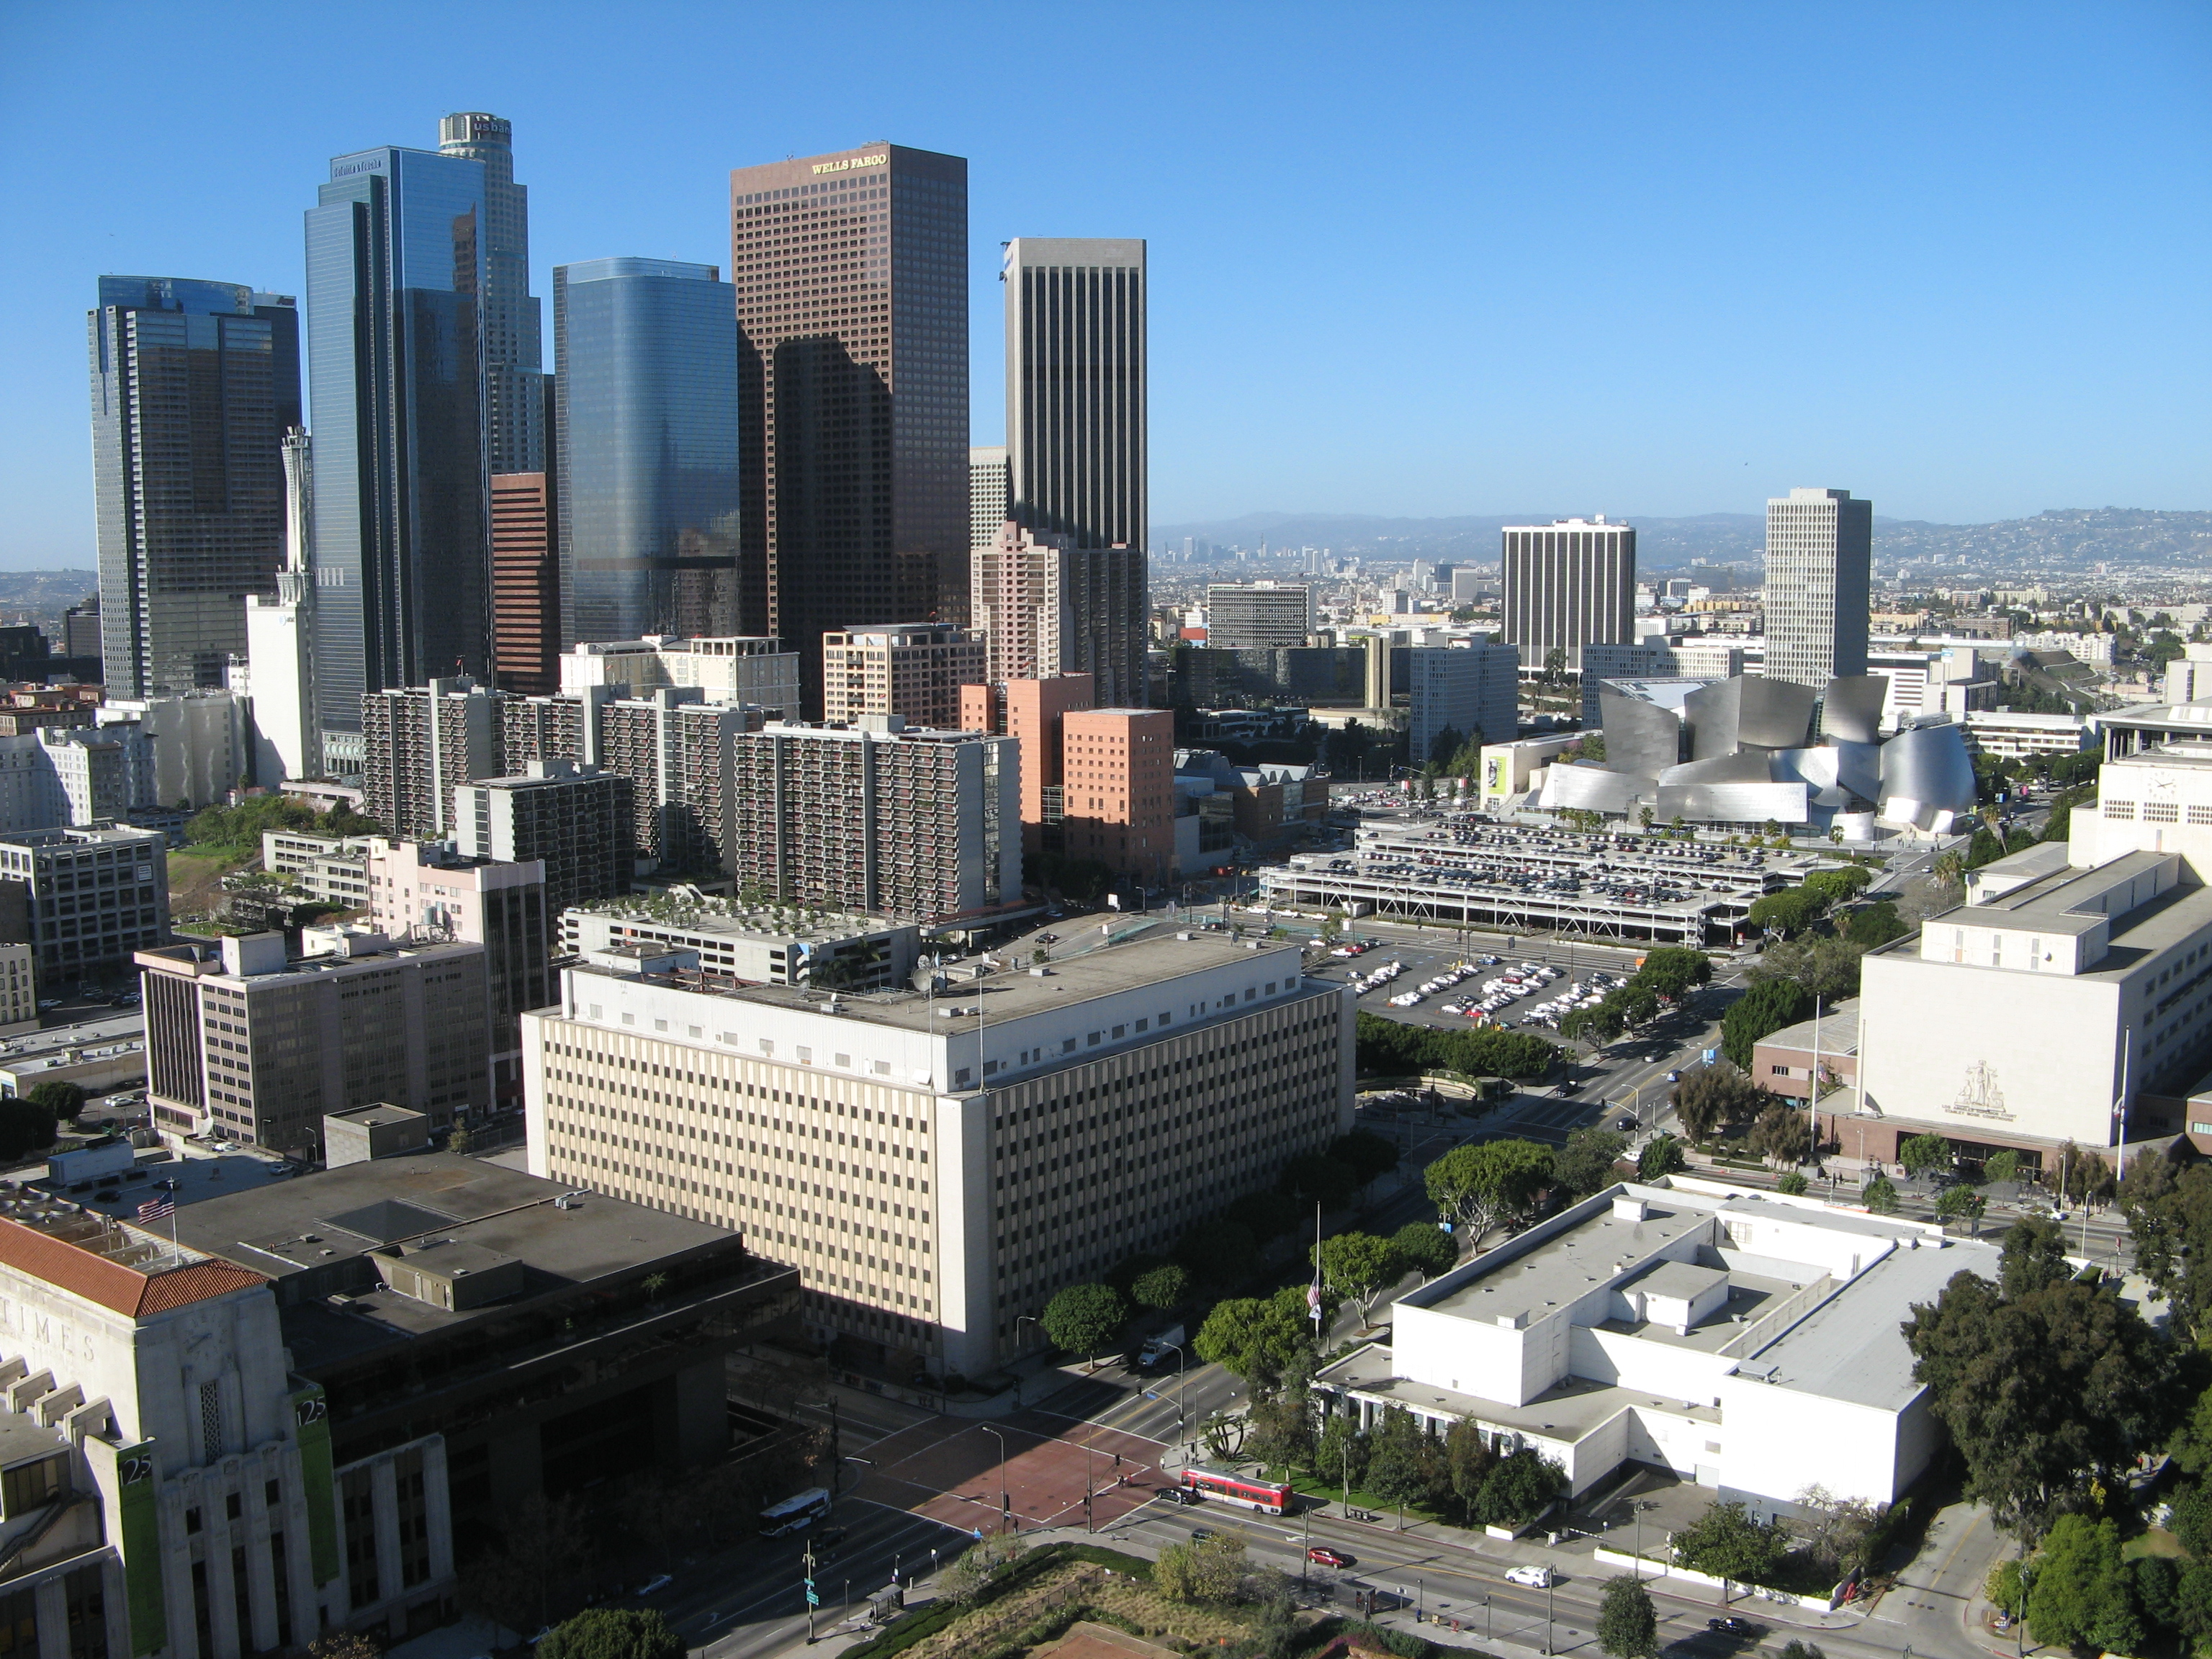 File:Bunker Hill Downtown Los Angeles.jpg - Wikimedia Commons